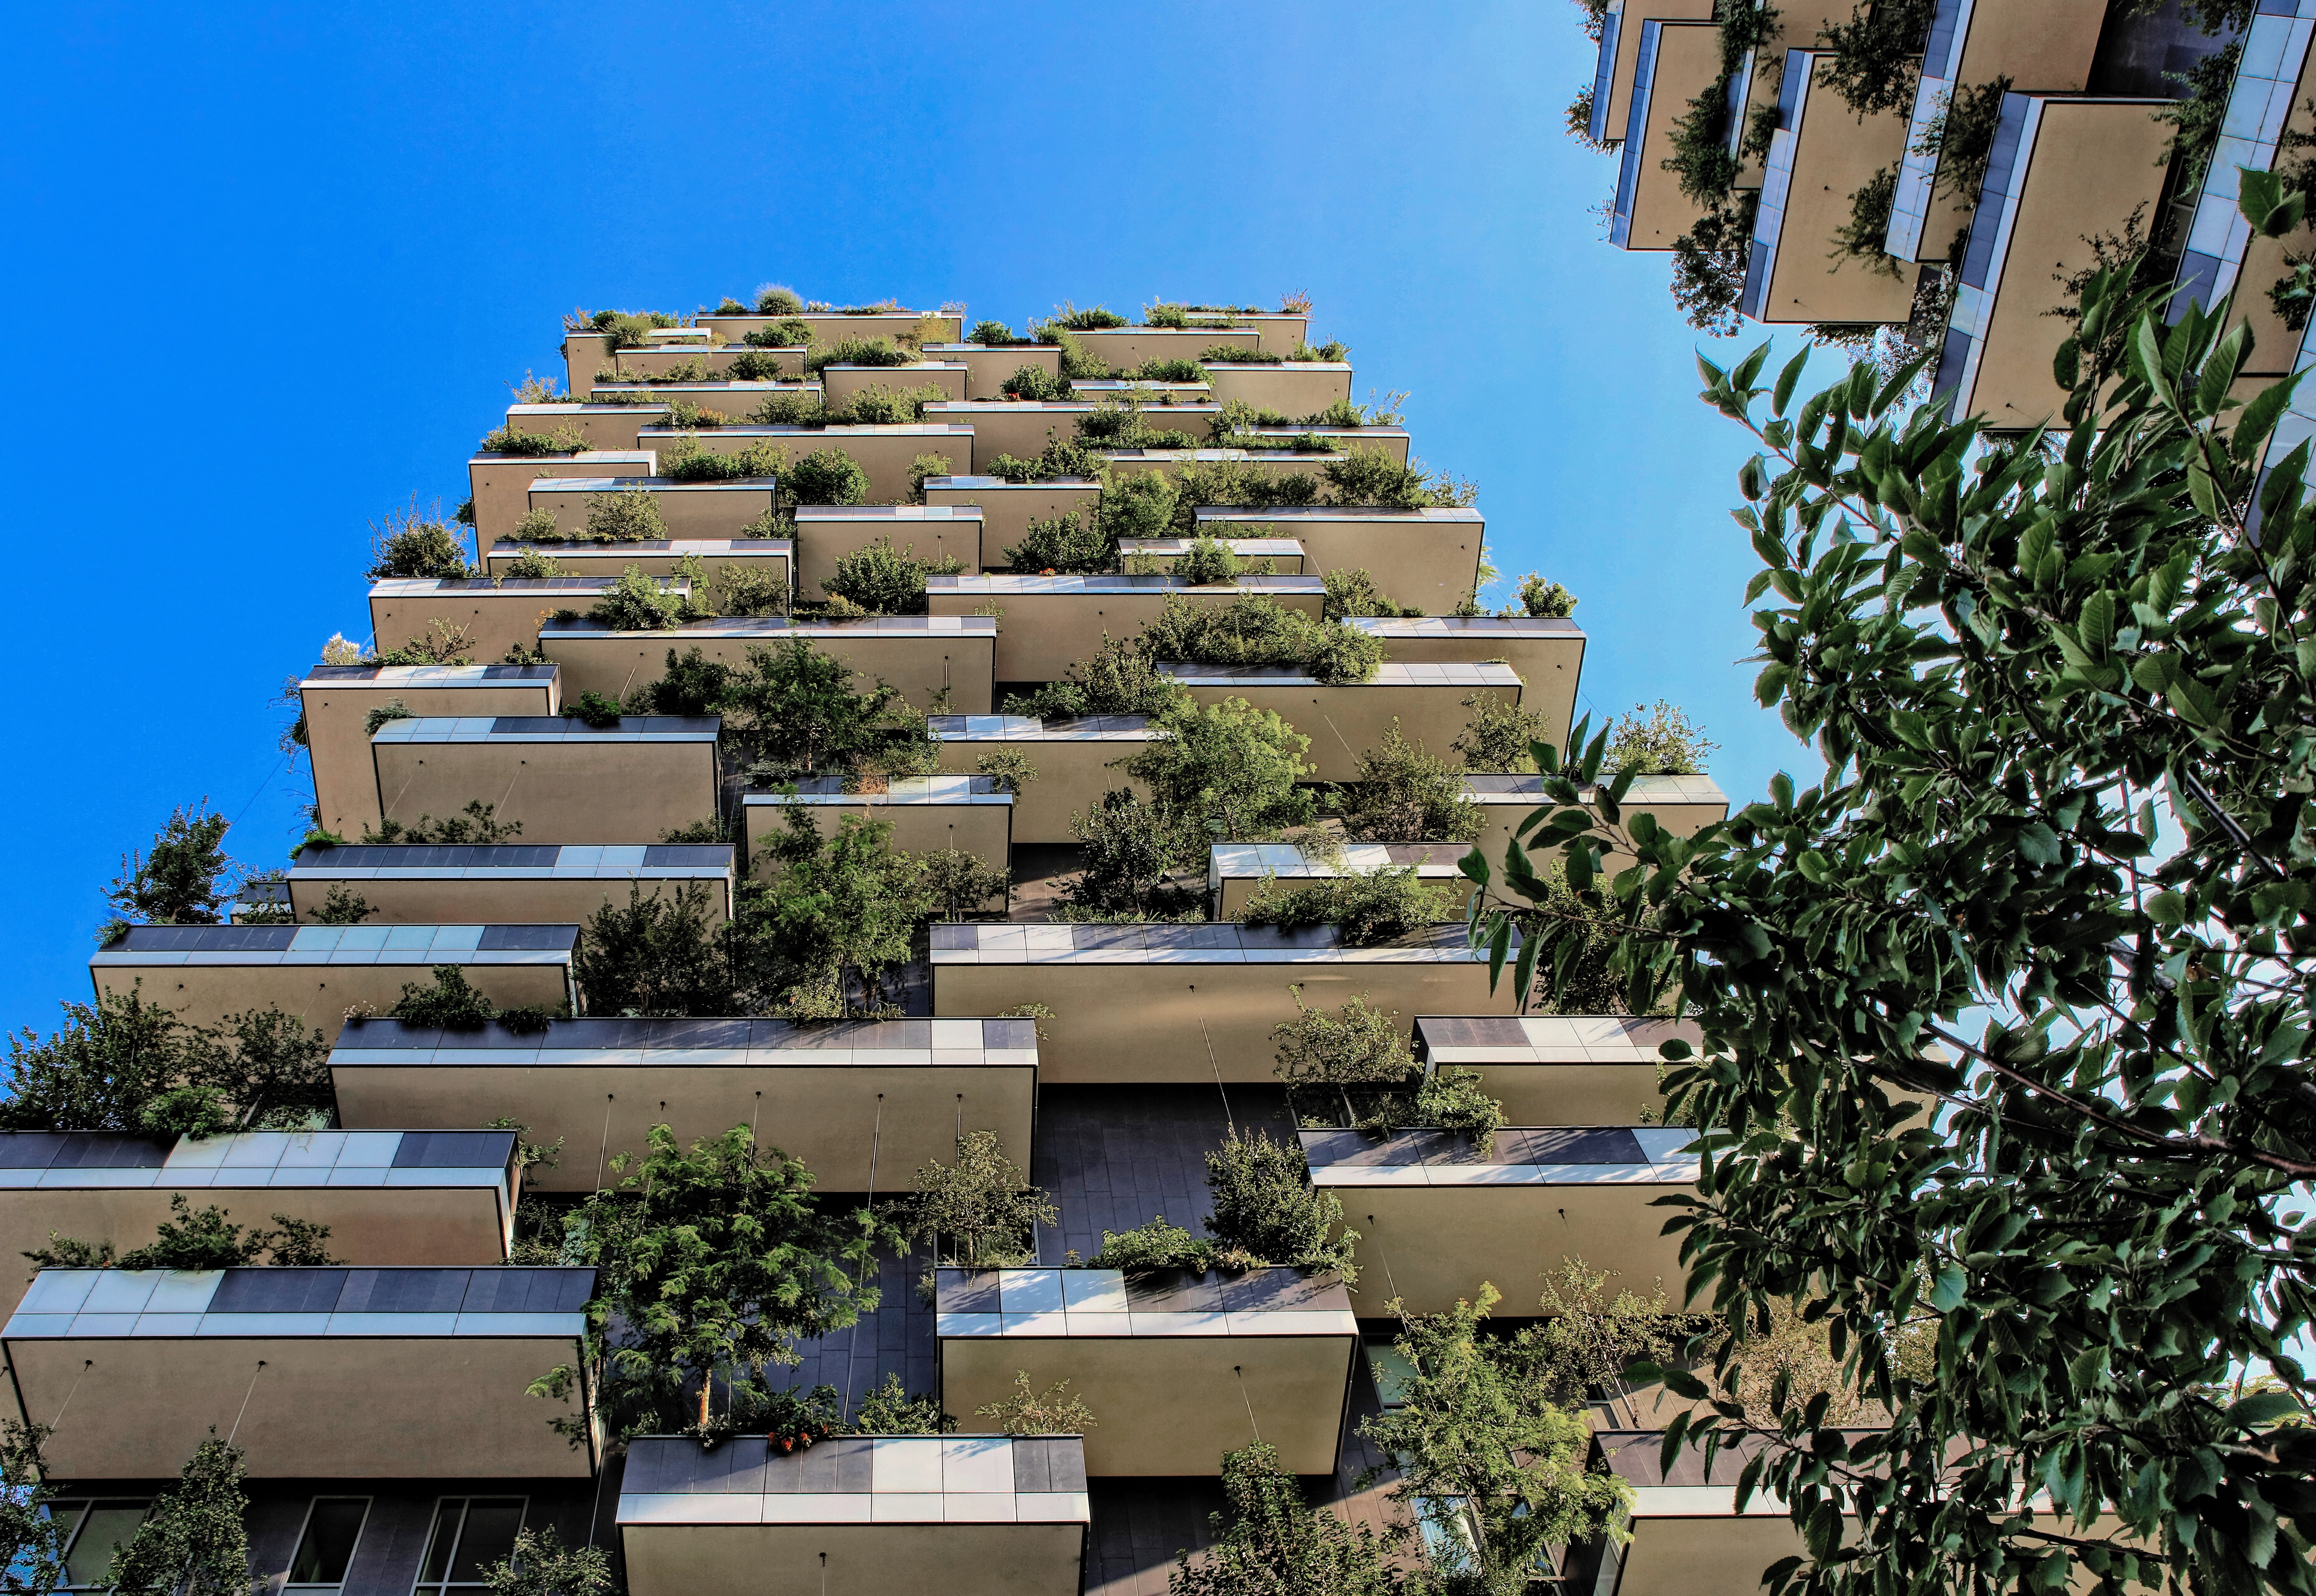 global-warming-eco-living-environment-healthy-living-green-apartments